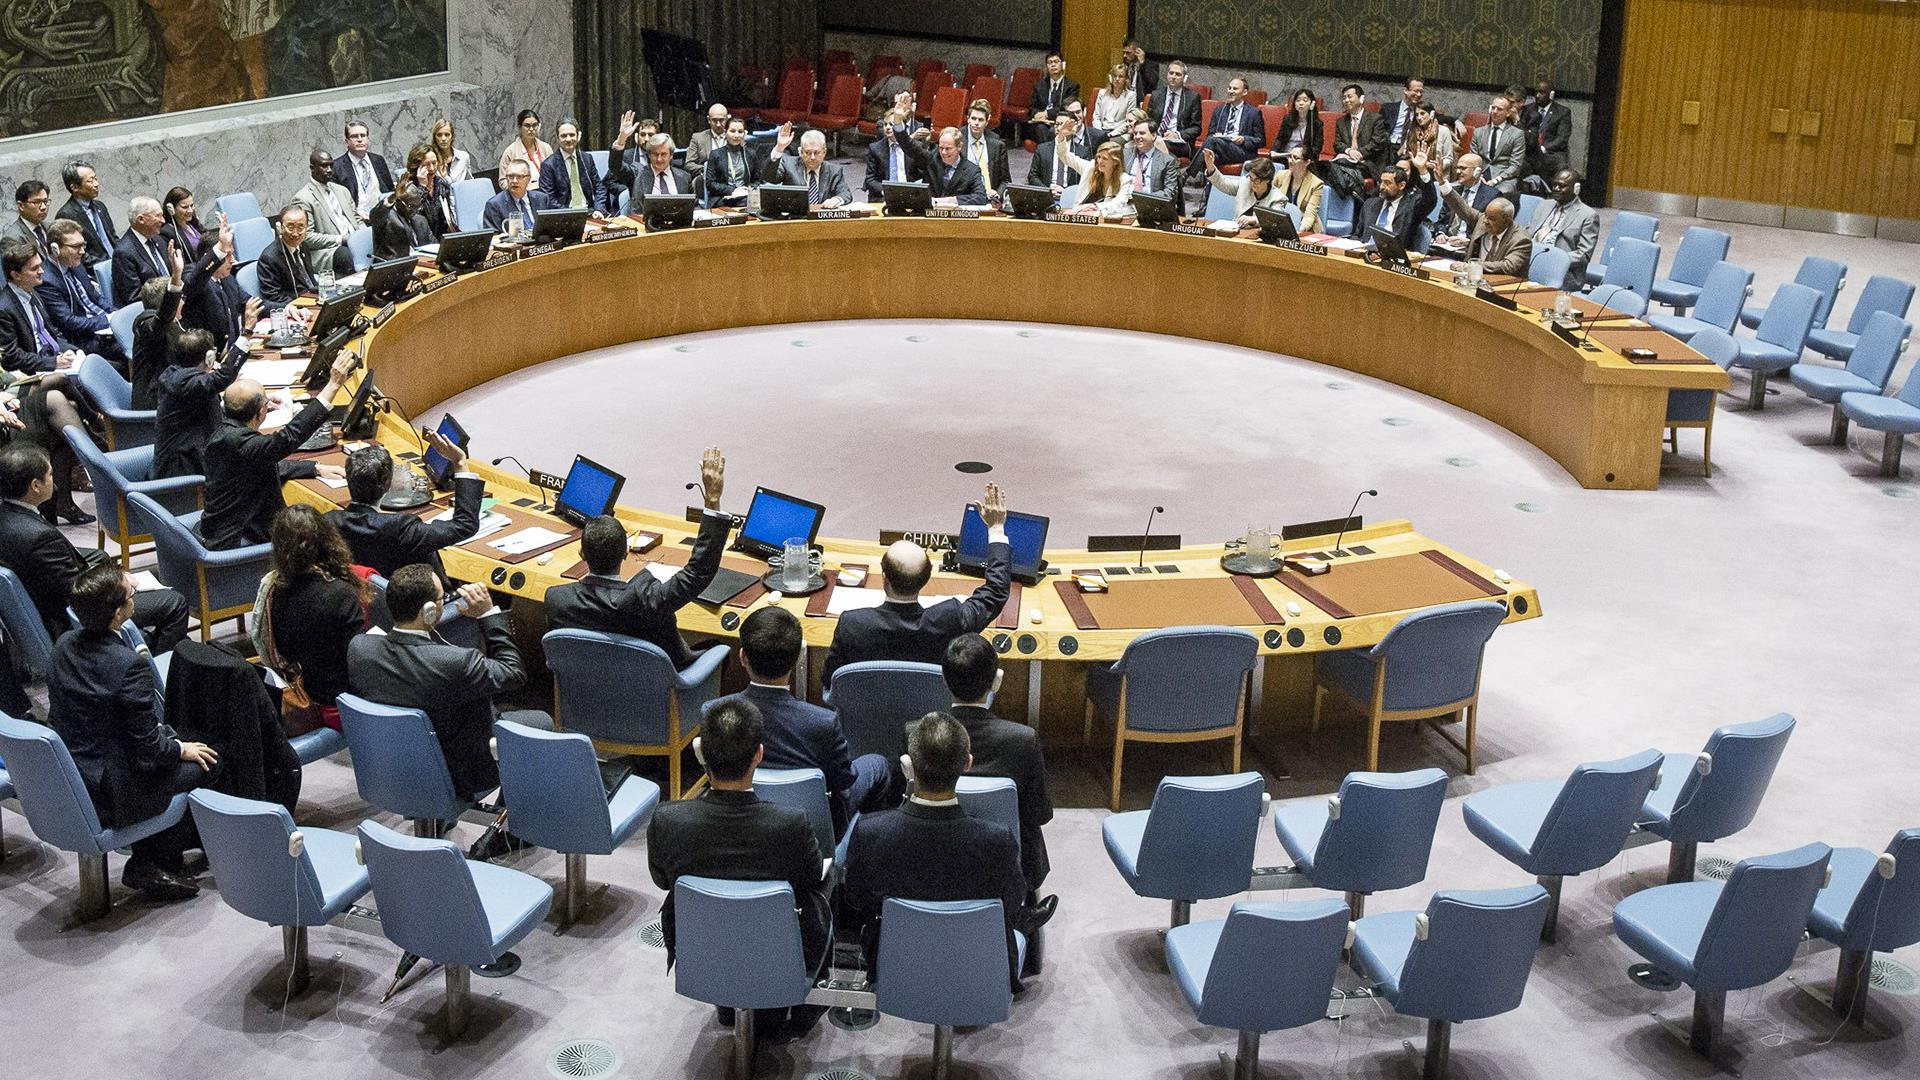 security council meeting Un security council to meet over syria strikes syria un council members of the security council gather for a meeting on syria on apr 13, 2018.